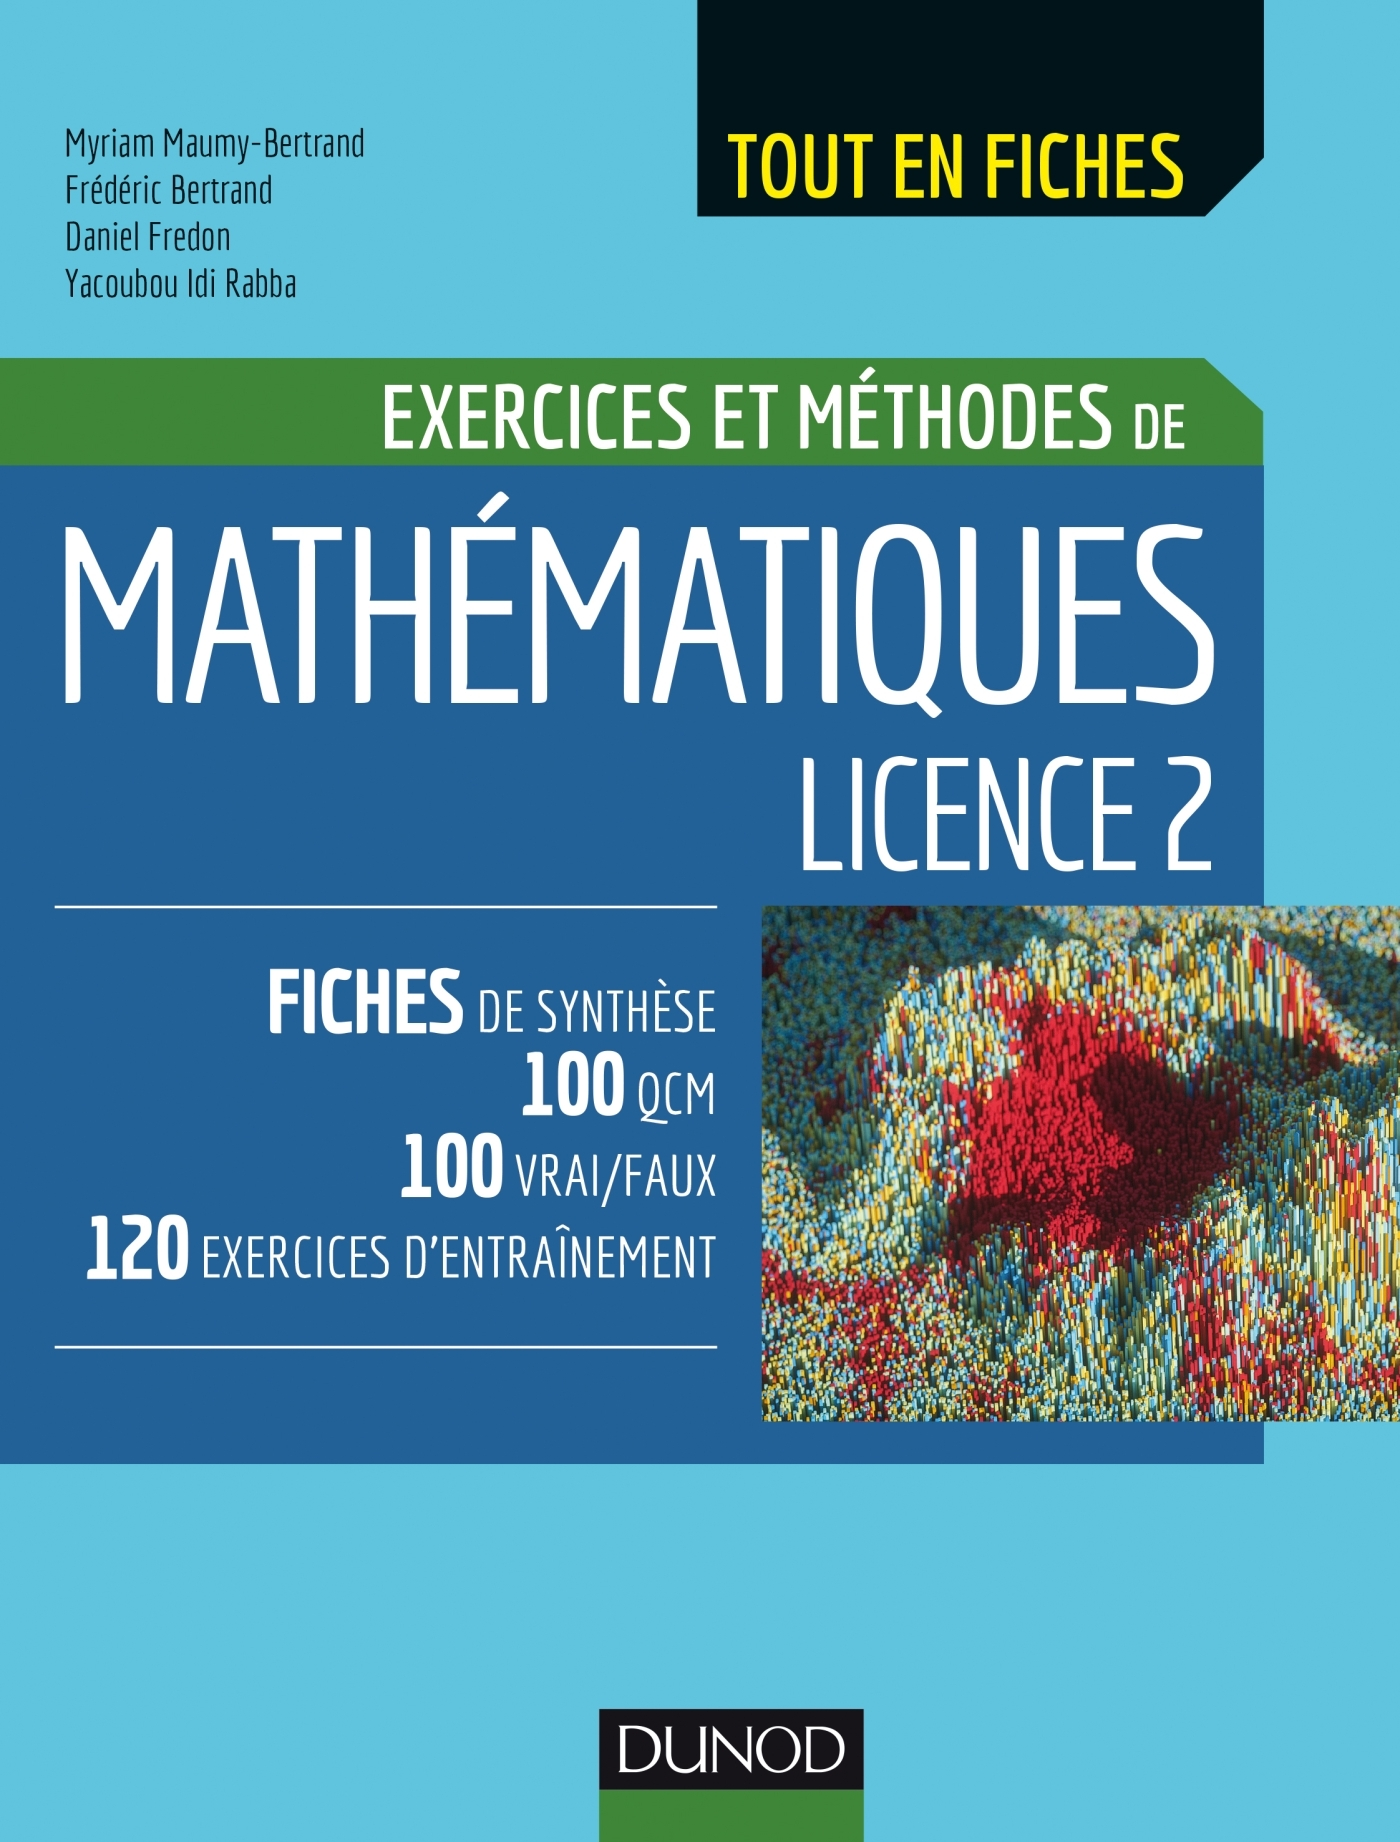 MATHEMATIQUES LICENCE 2 - EXERCICES ET METHODES